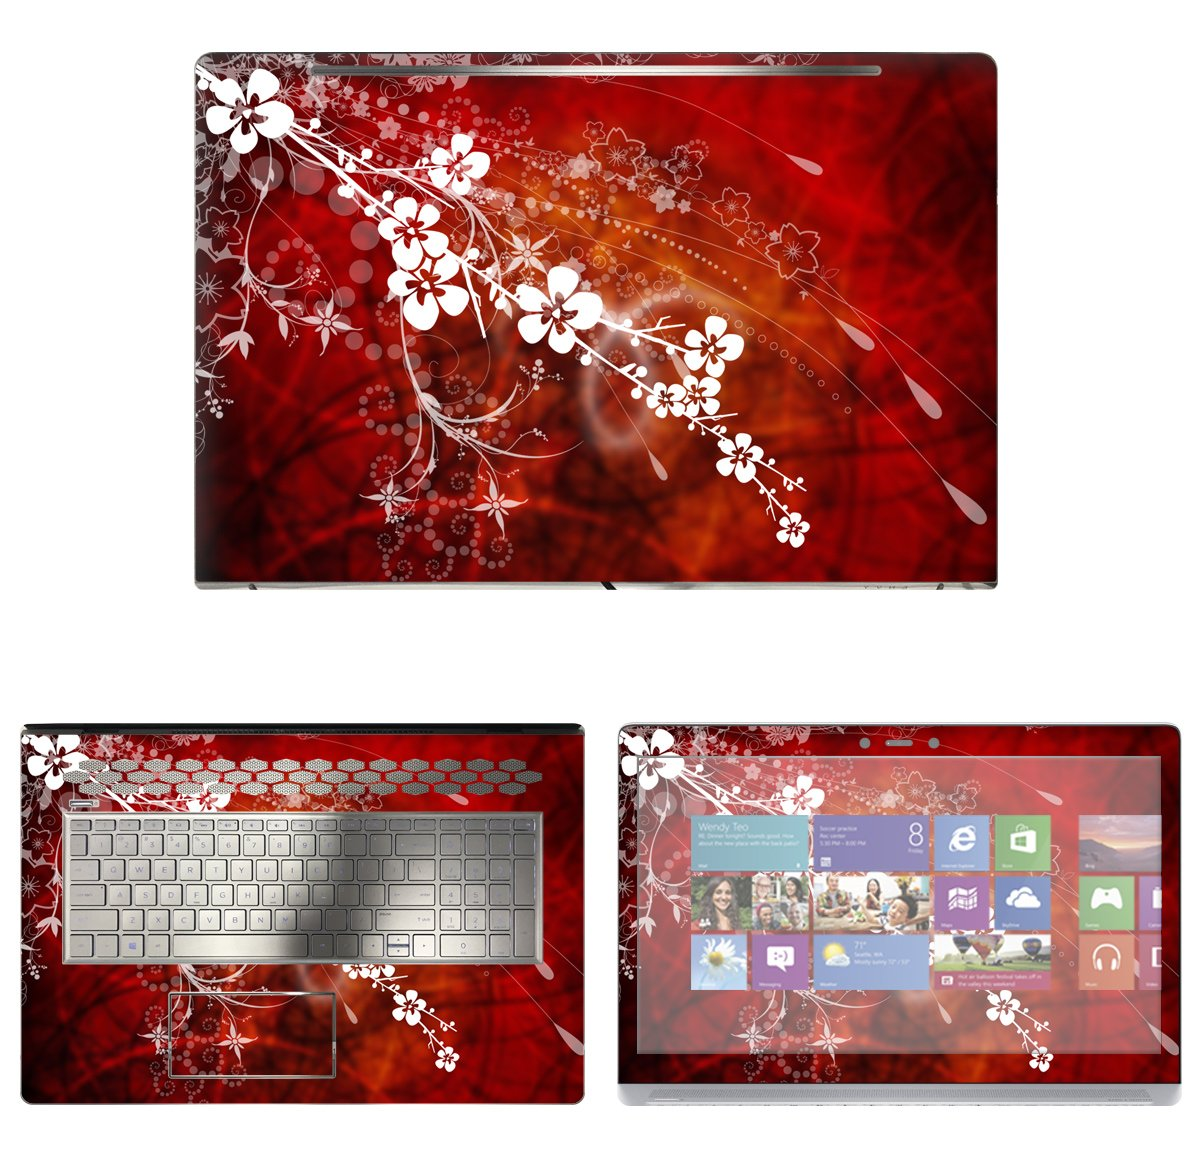 Decalrus - Protective Decal Floral Skin Sticker for HP ENVY 17M AE011DX (17.3'' Screen) case cover wrap HPenvy17_ae011dx-100